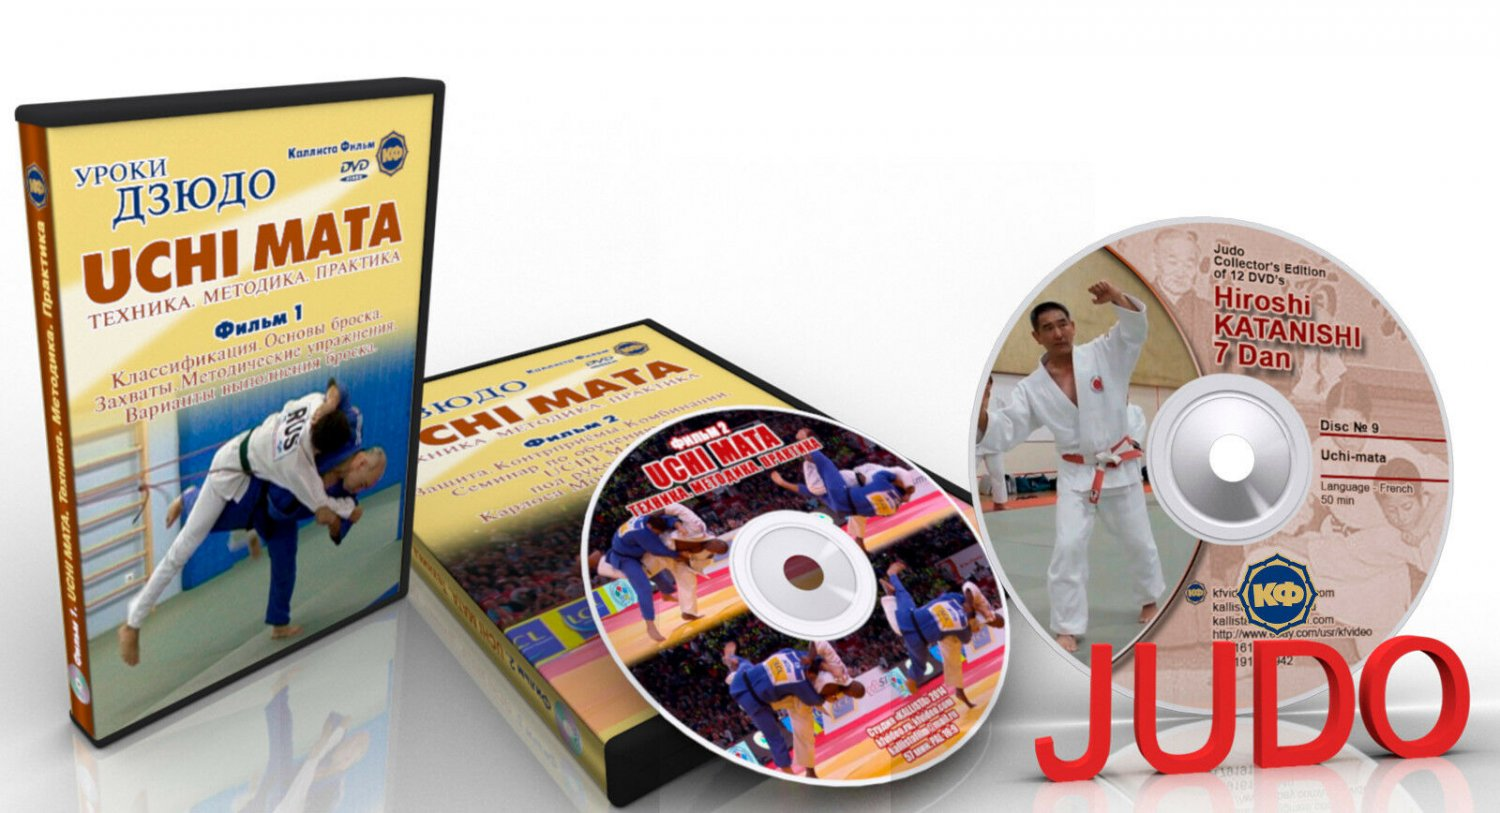 Judo.UCHI MATA.TECHNICS.METHODOLOGY. PRACTICE. Film 1+2+H.Katanishi (Disc only).